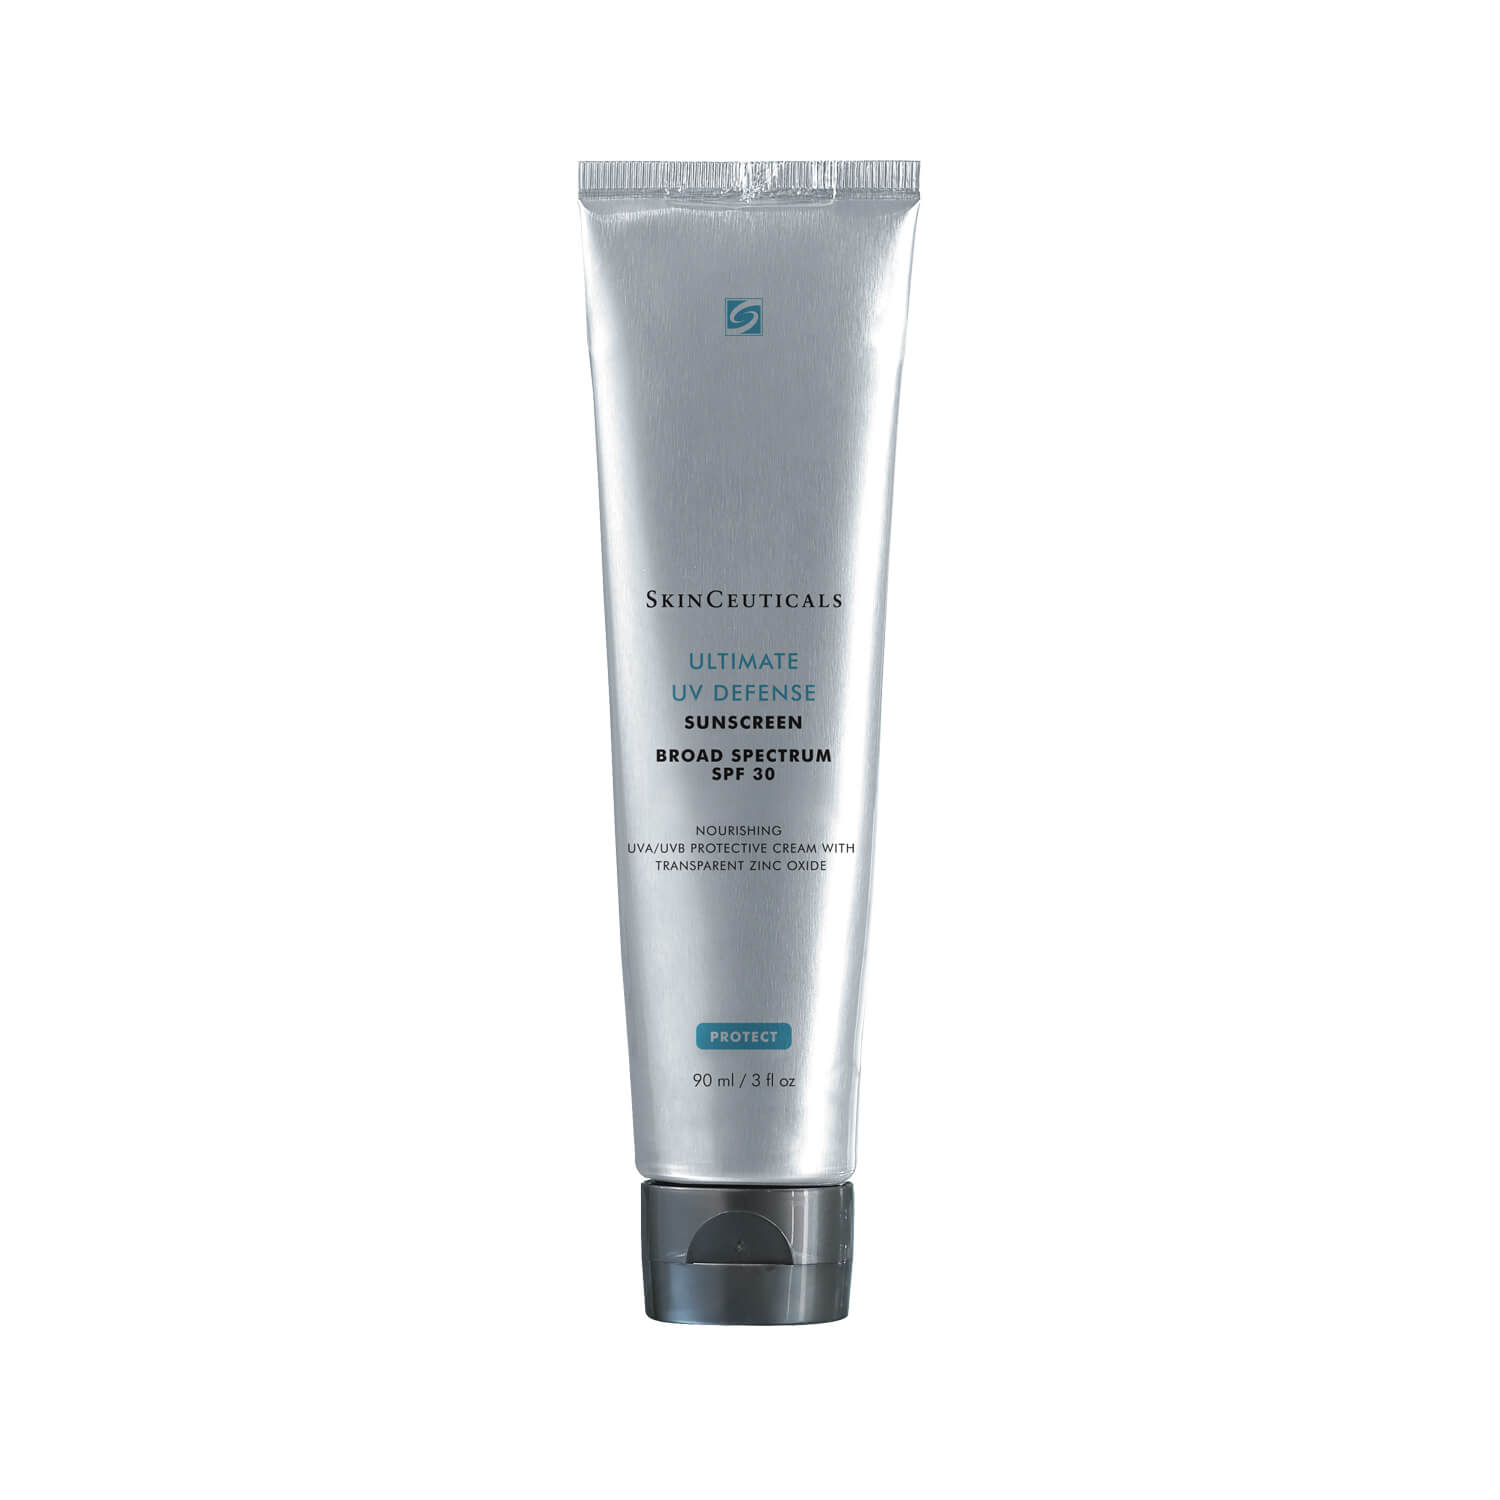 Watch a story about SKINCEUTICALS ULTIMATE UV DEFENSE SPF 30